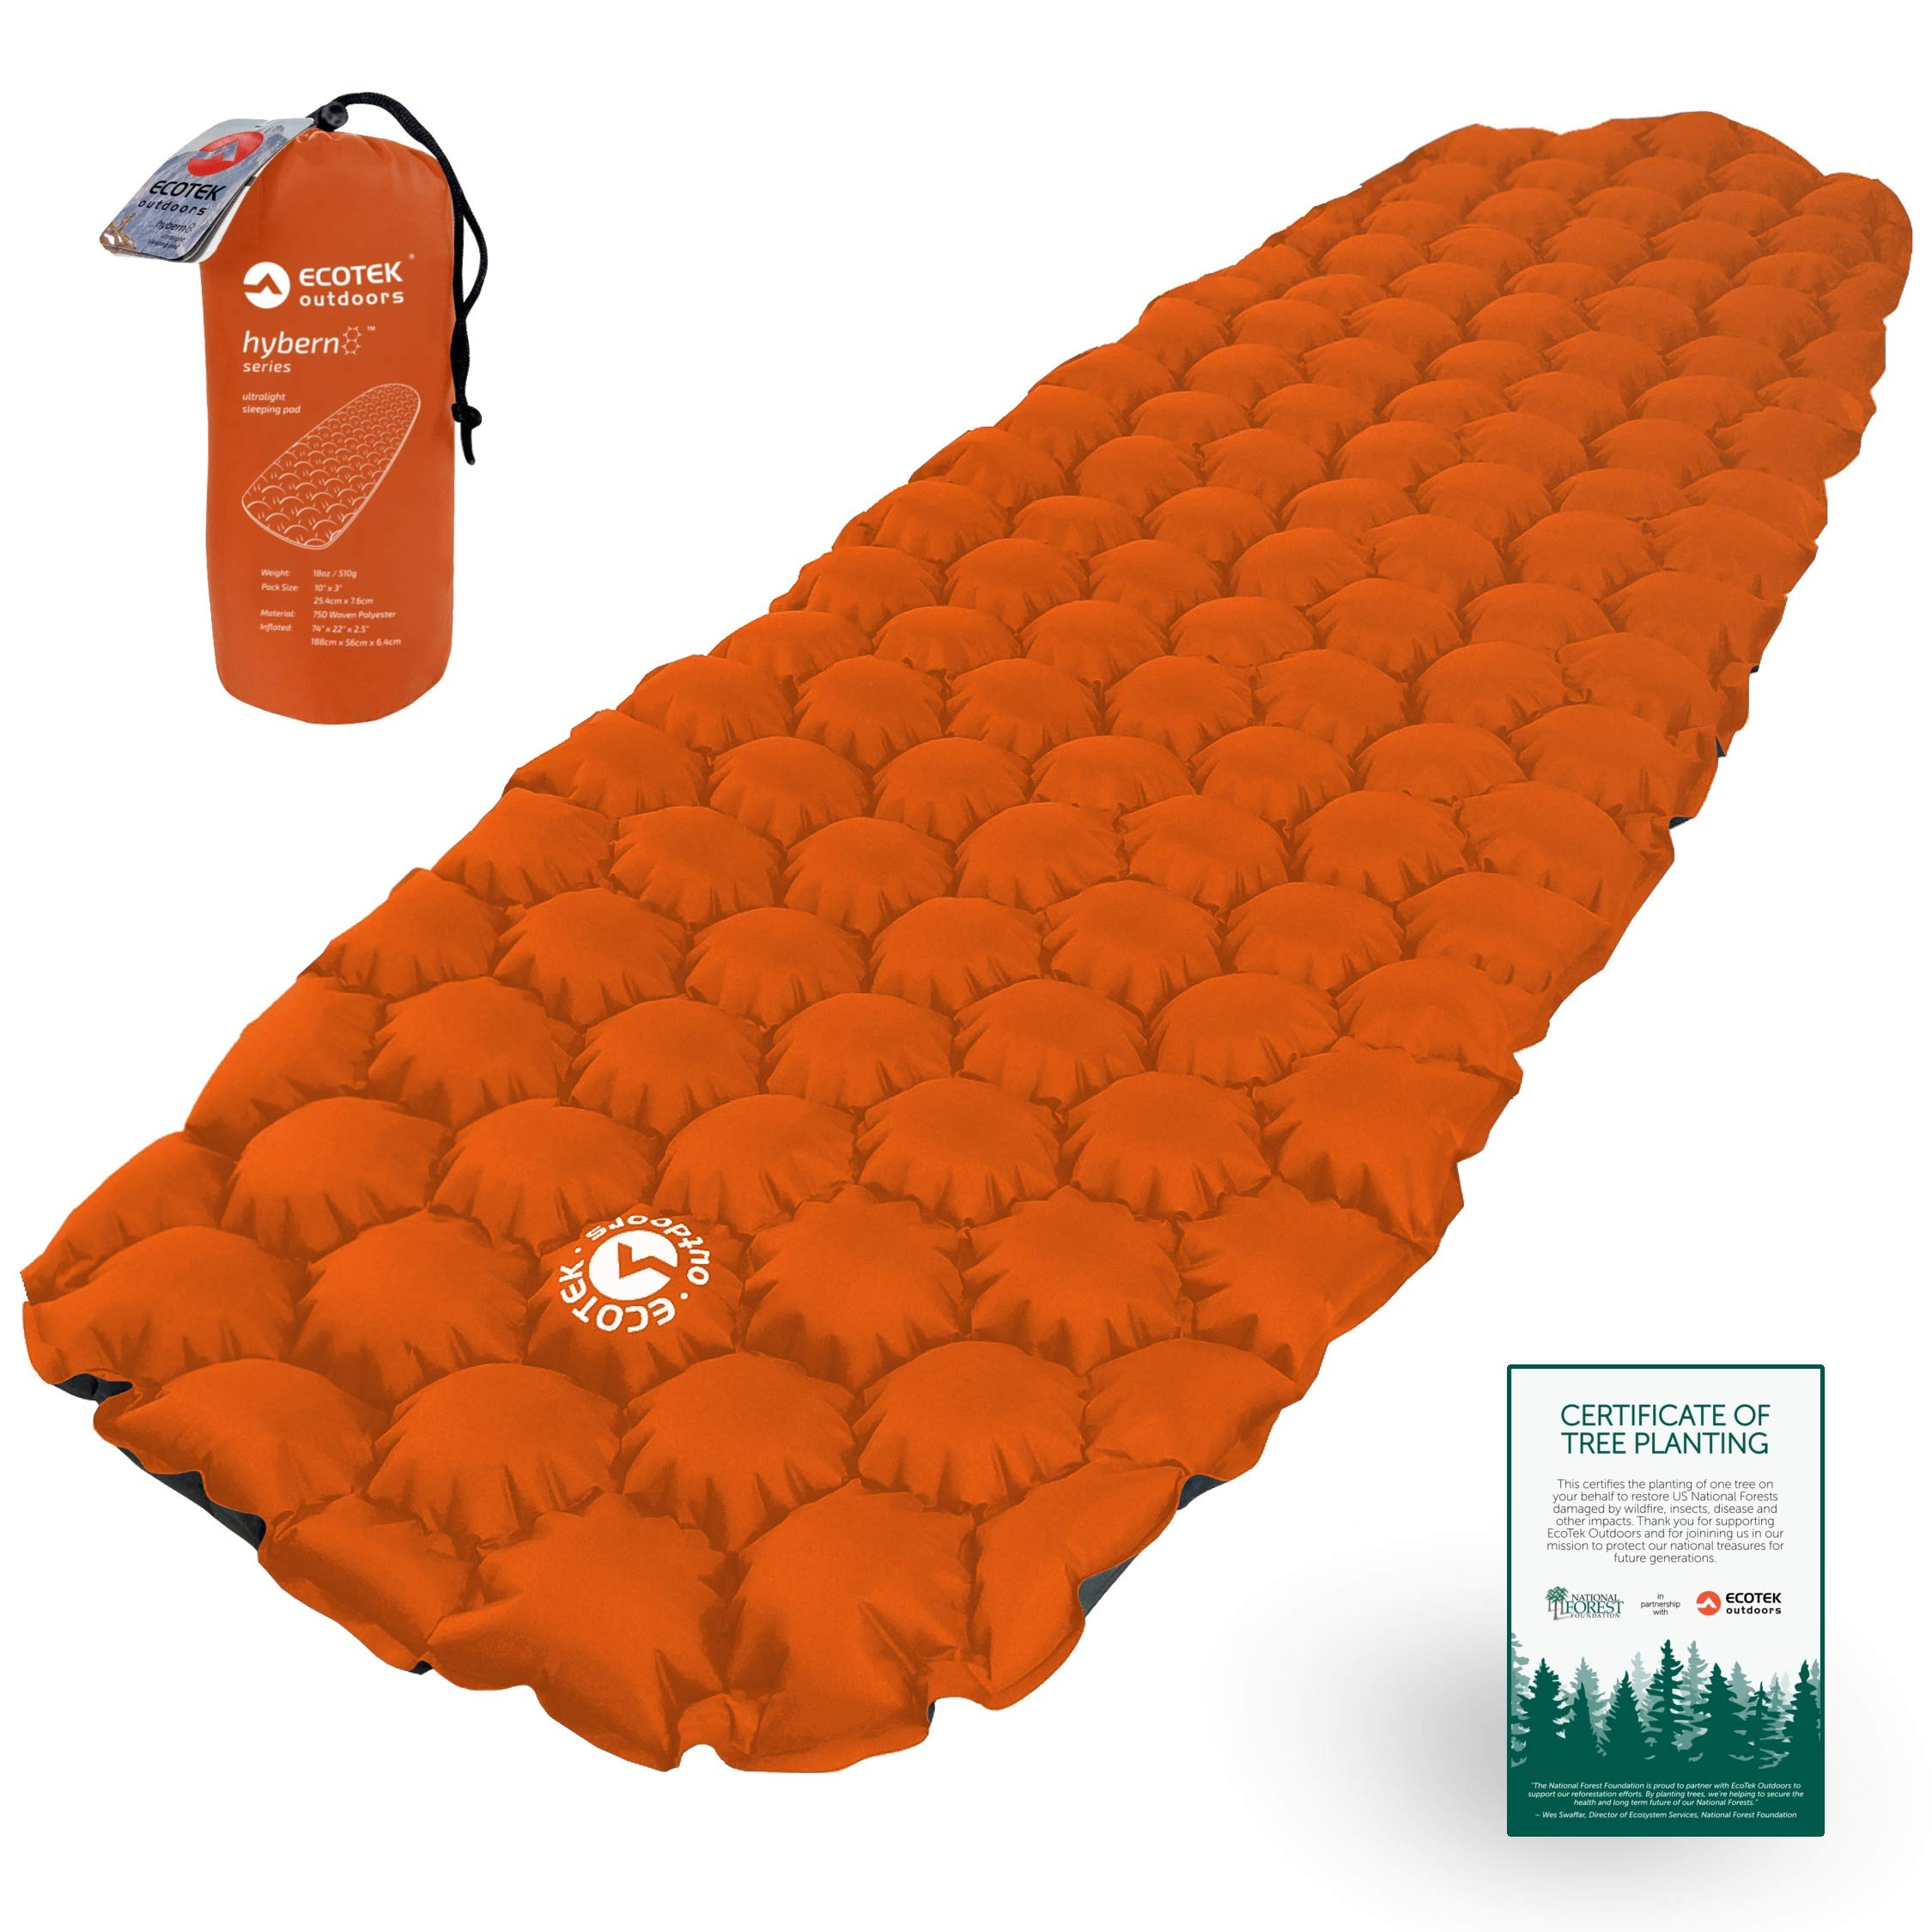 ECOTEK Outdoors Hybern8 Ultralight Inflatable Sleeping Pad Air Mattress for Hiking, Backpacking, Camping, Travel - Lightweight Portable Gear for Your Sleeping Bag, Bivy, Hammock, Cot, Mat, Tent by ECOTEK